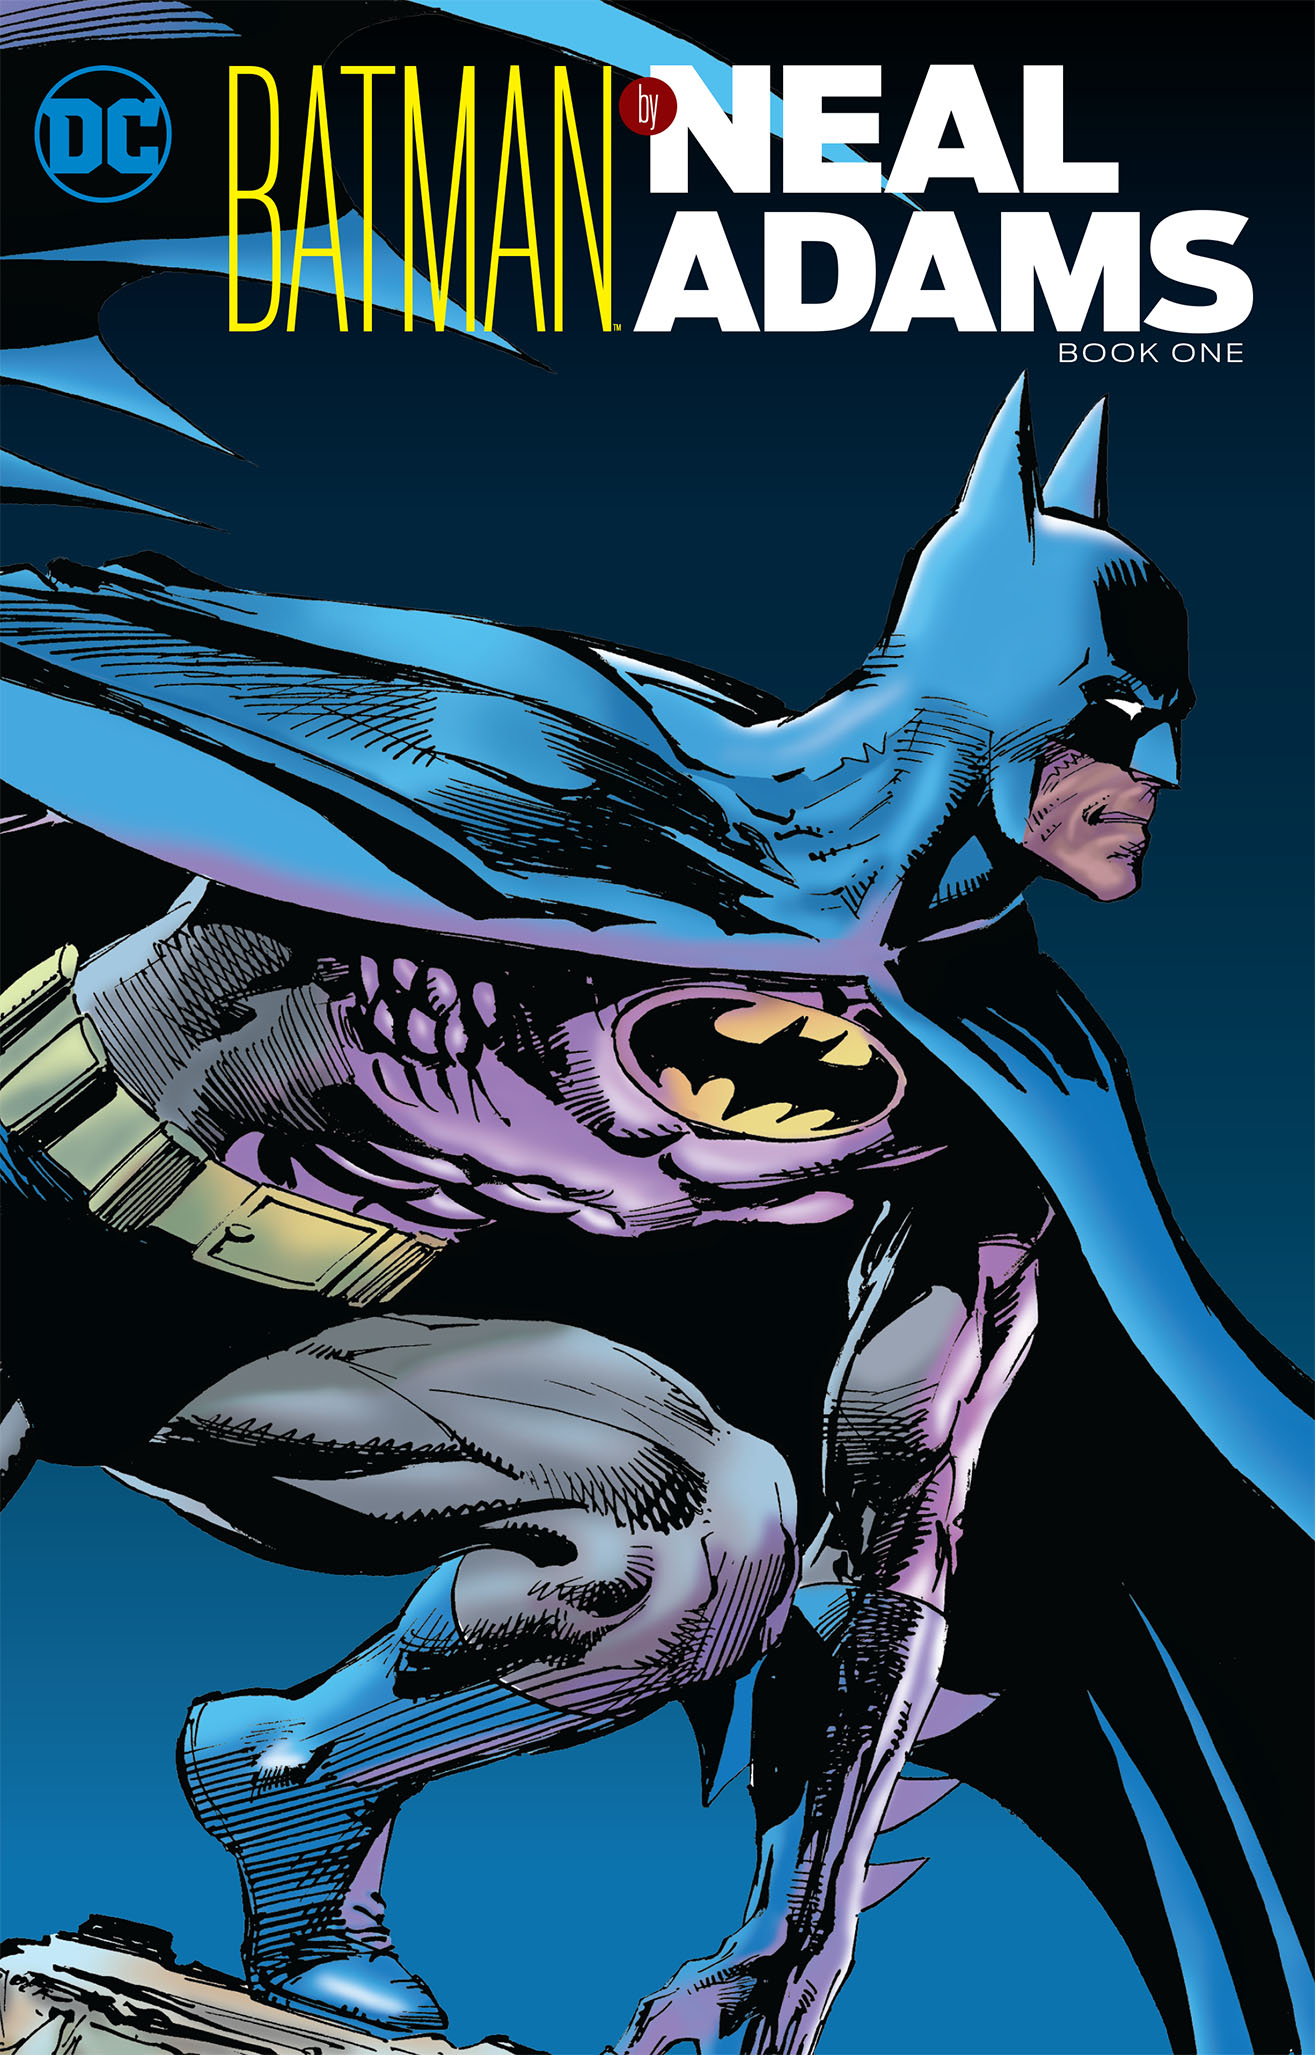 BATMAN BY NEAL ADAMS TP BOOK 01 (DEC170387)